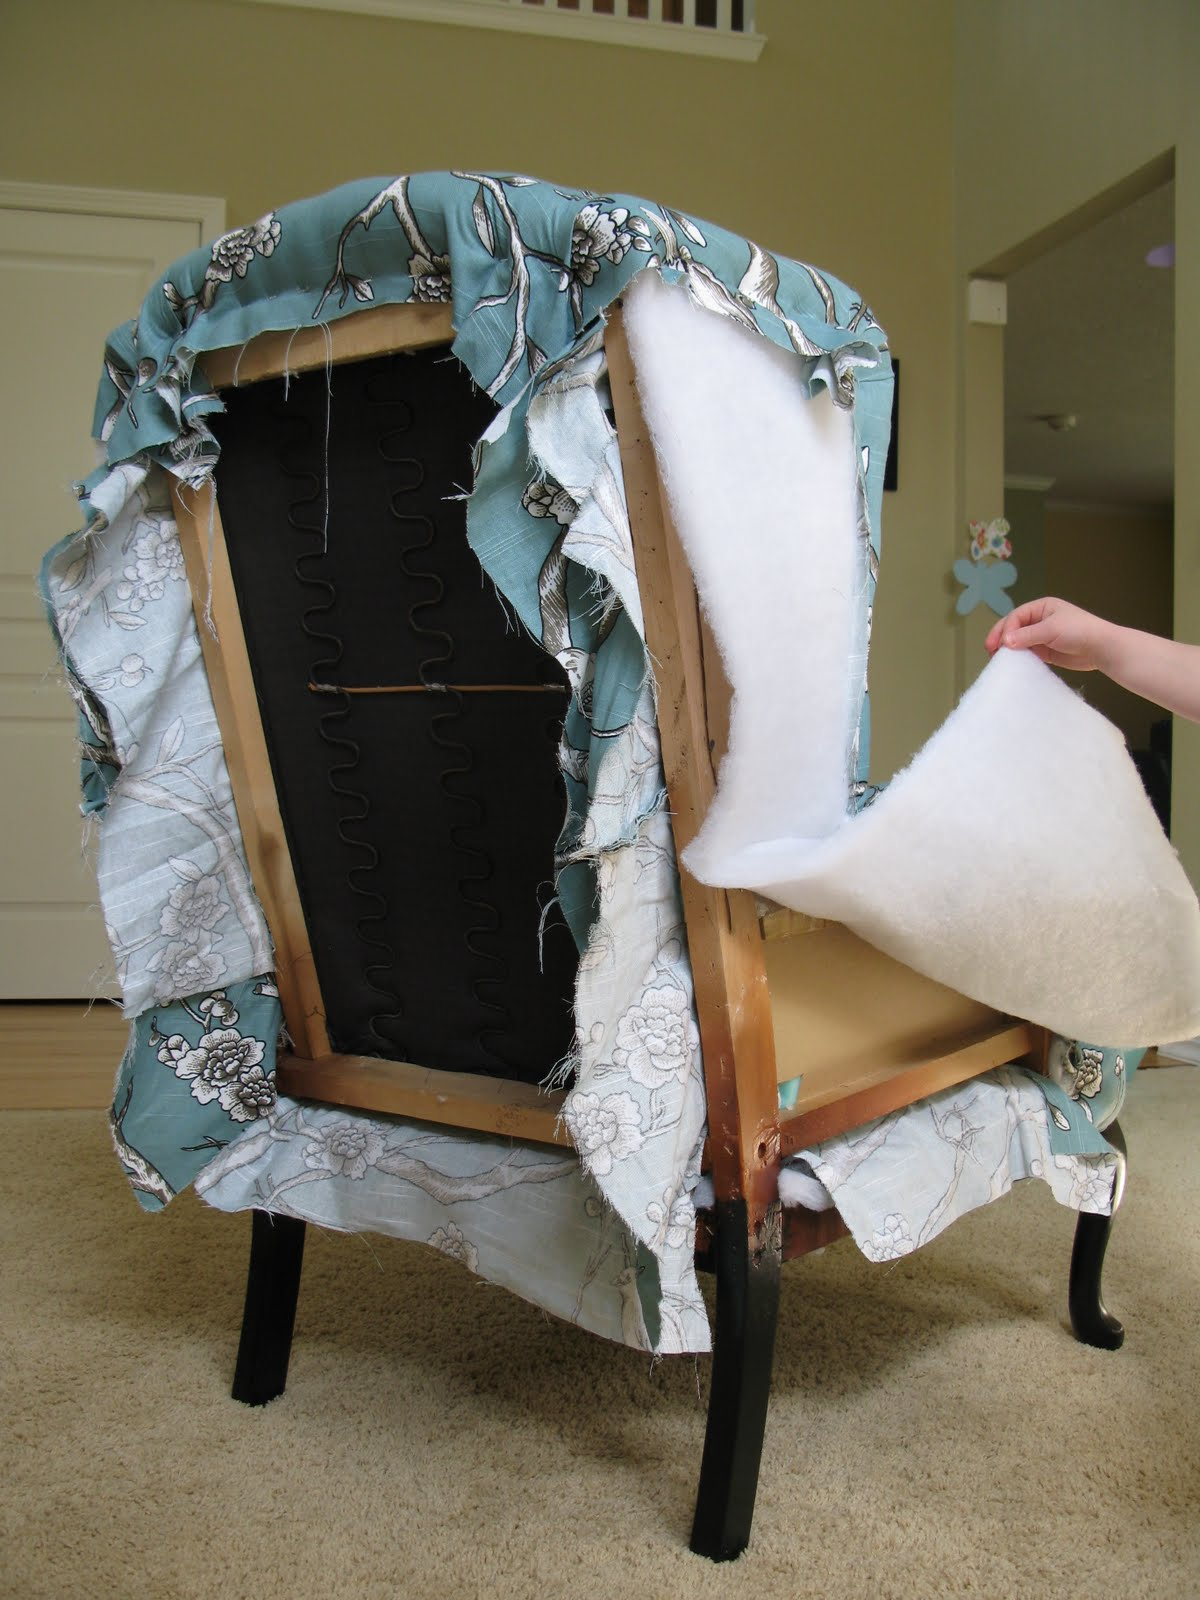 & Modest Maven: Vintage Blossom Wingback Chair